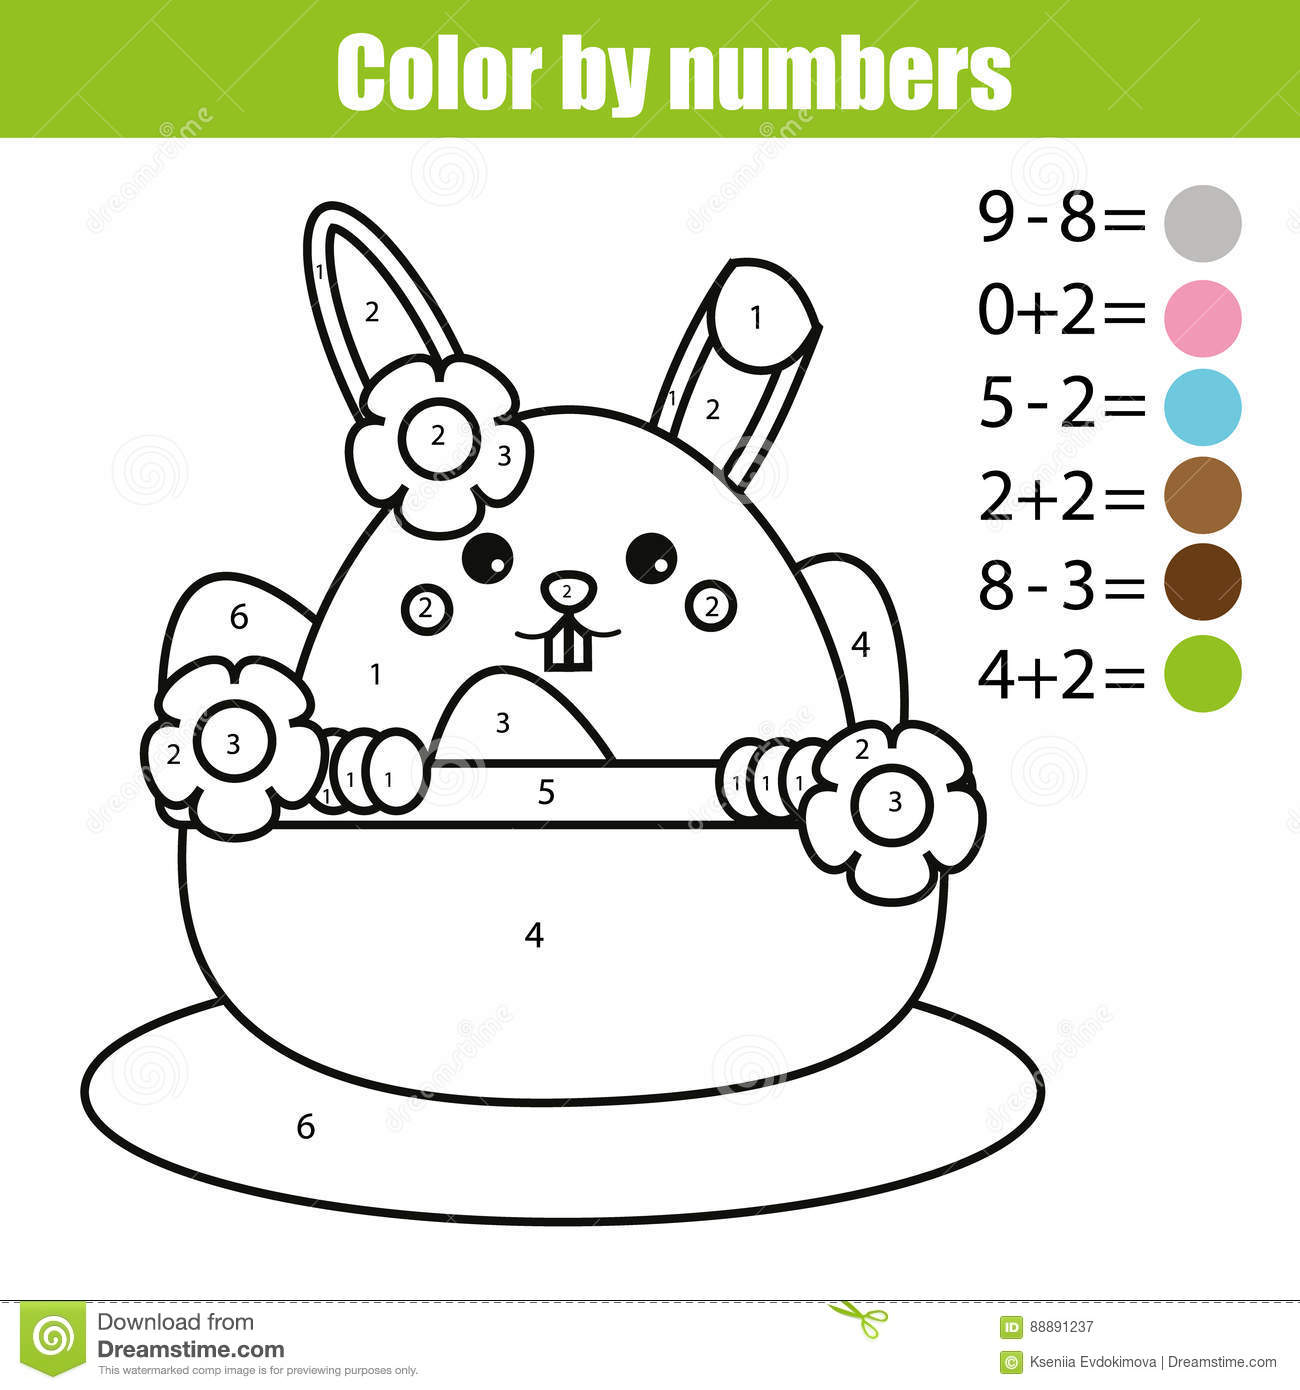 Coloring by numbers for rabbits - Royalty Free Vector Download Coloring Page With Easter Bunny